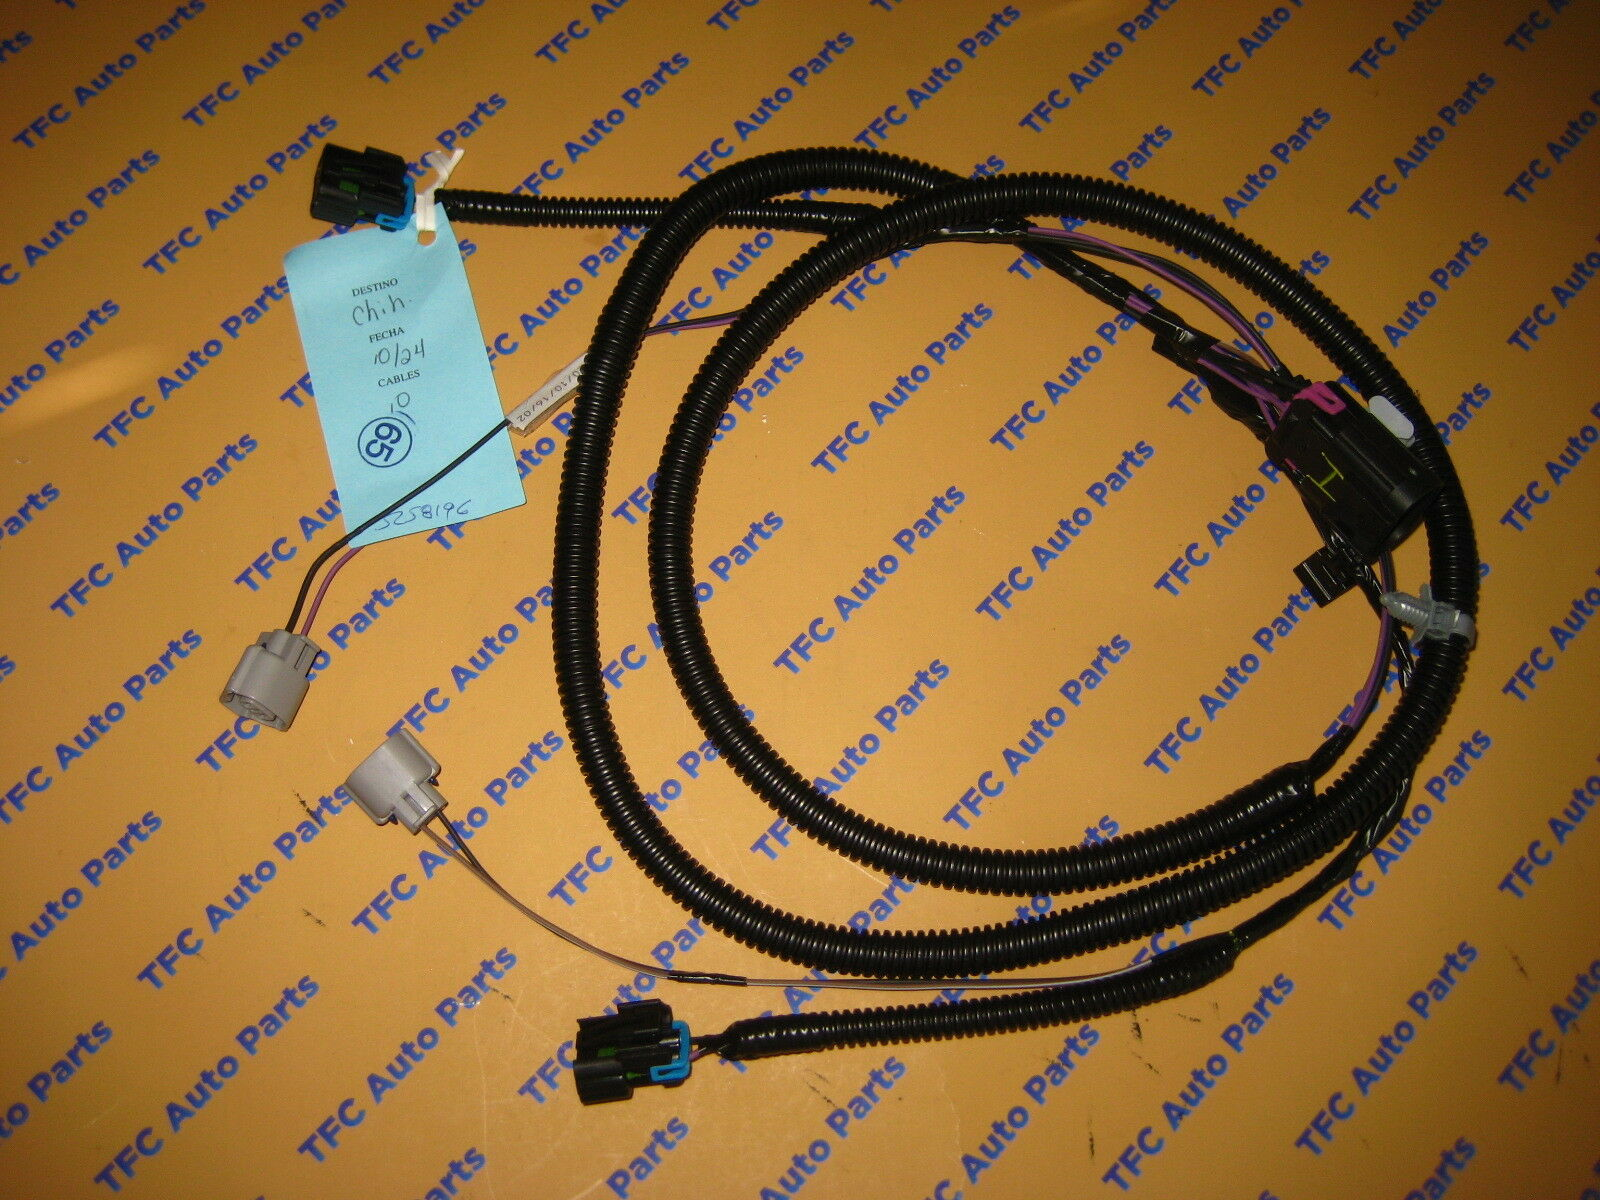 hight resolution of chevy camaro fog light wiring harness kit oem new genuine gm 2010 2005 chevy truck brake light switch harness gm fog light wiring harness